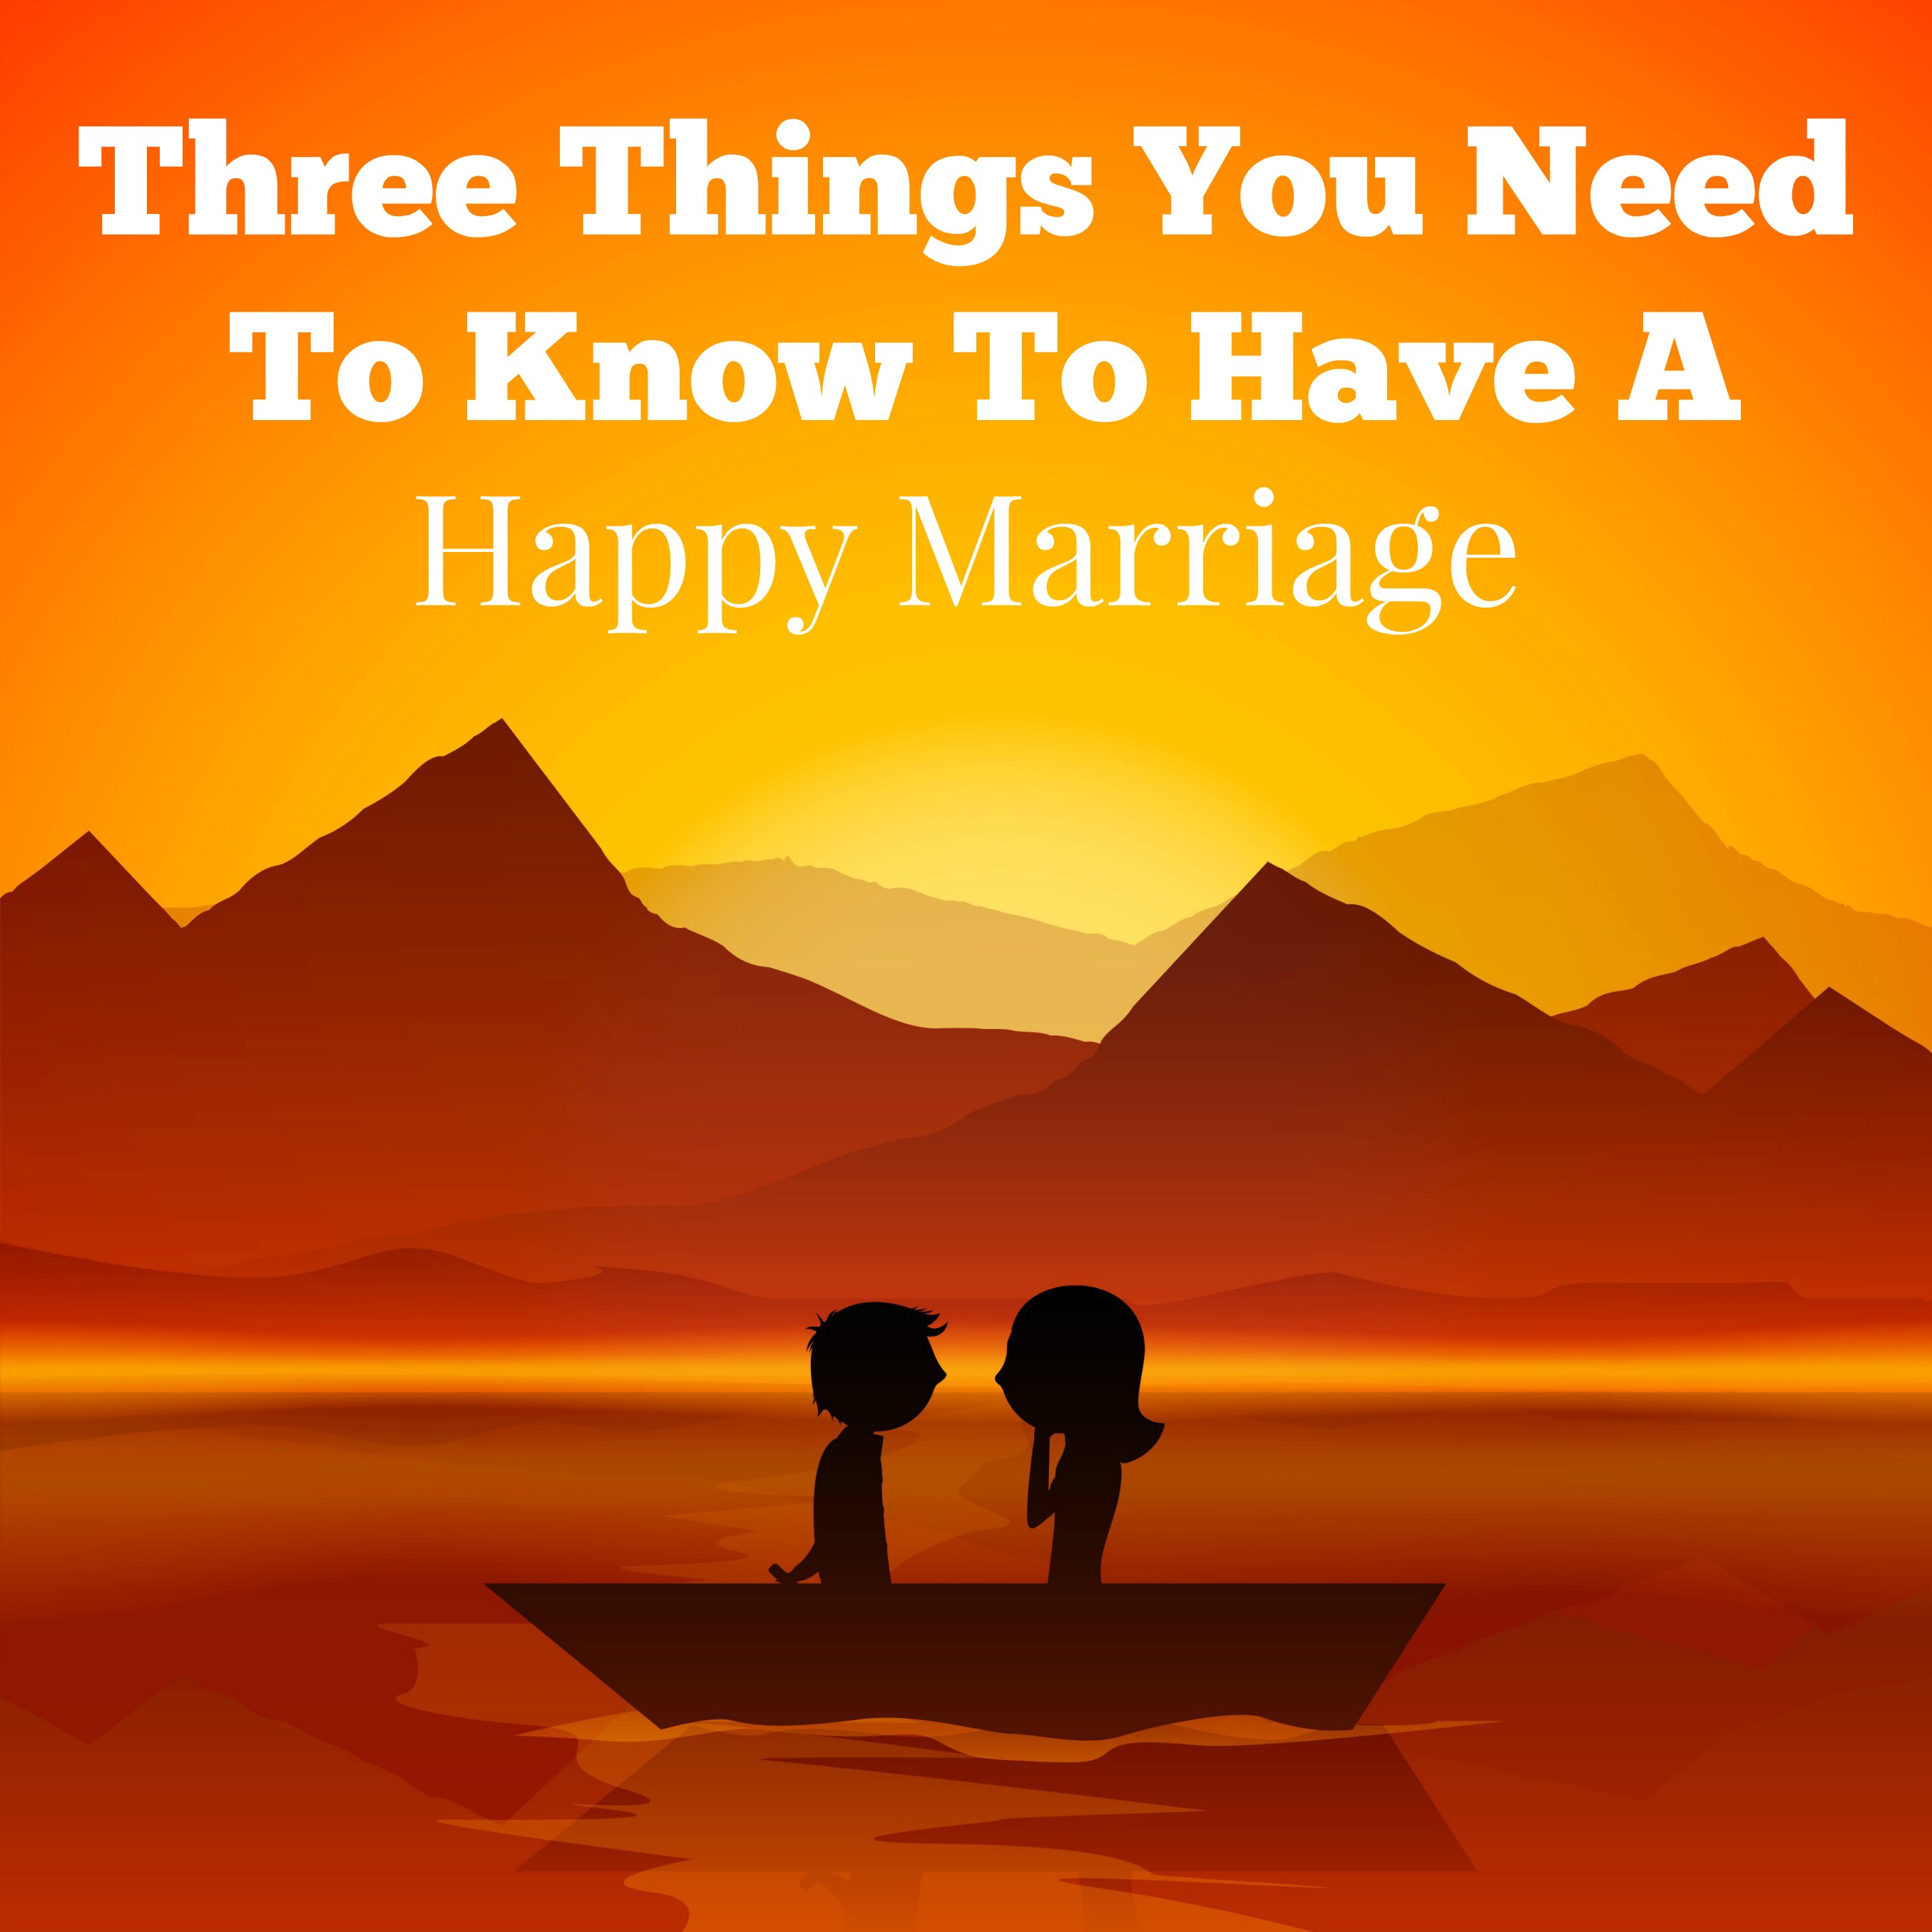 Reese family three things you need to know to have a happy marriage